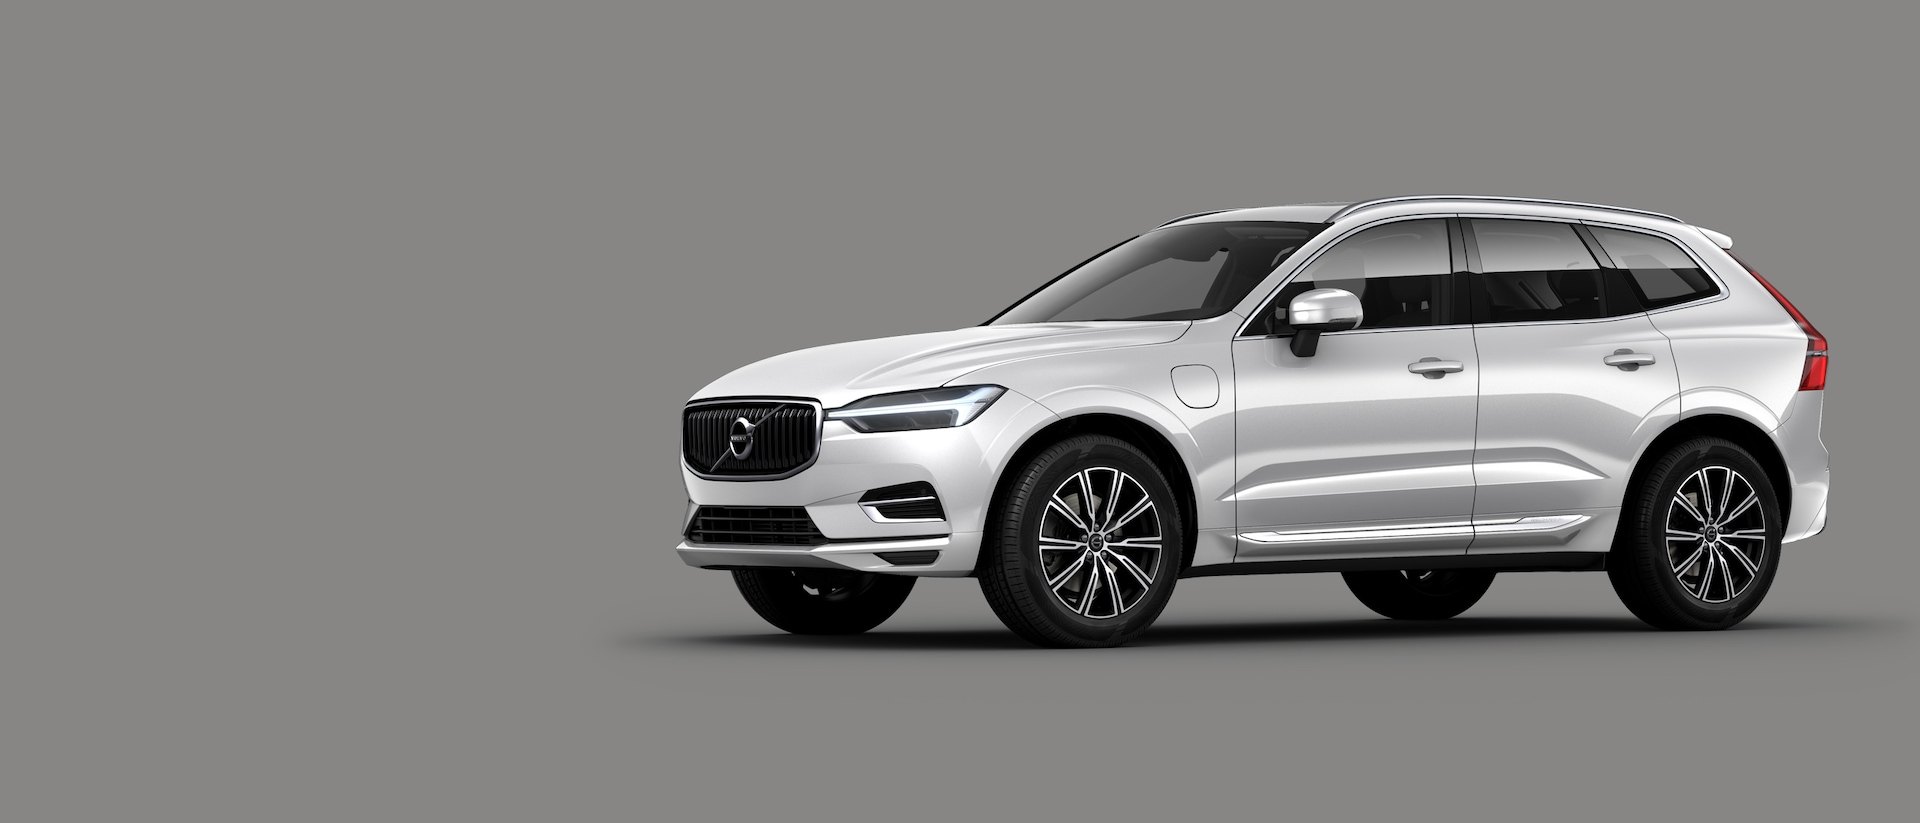 Pohled na vůz Volvo XC60 Recharge